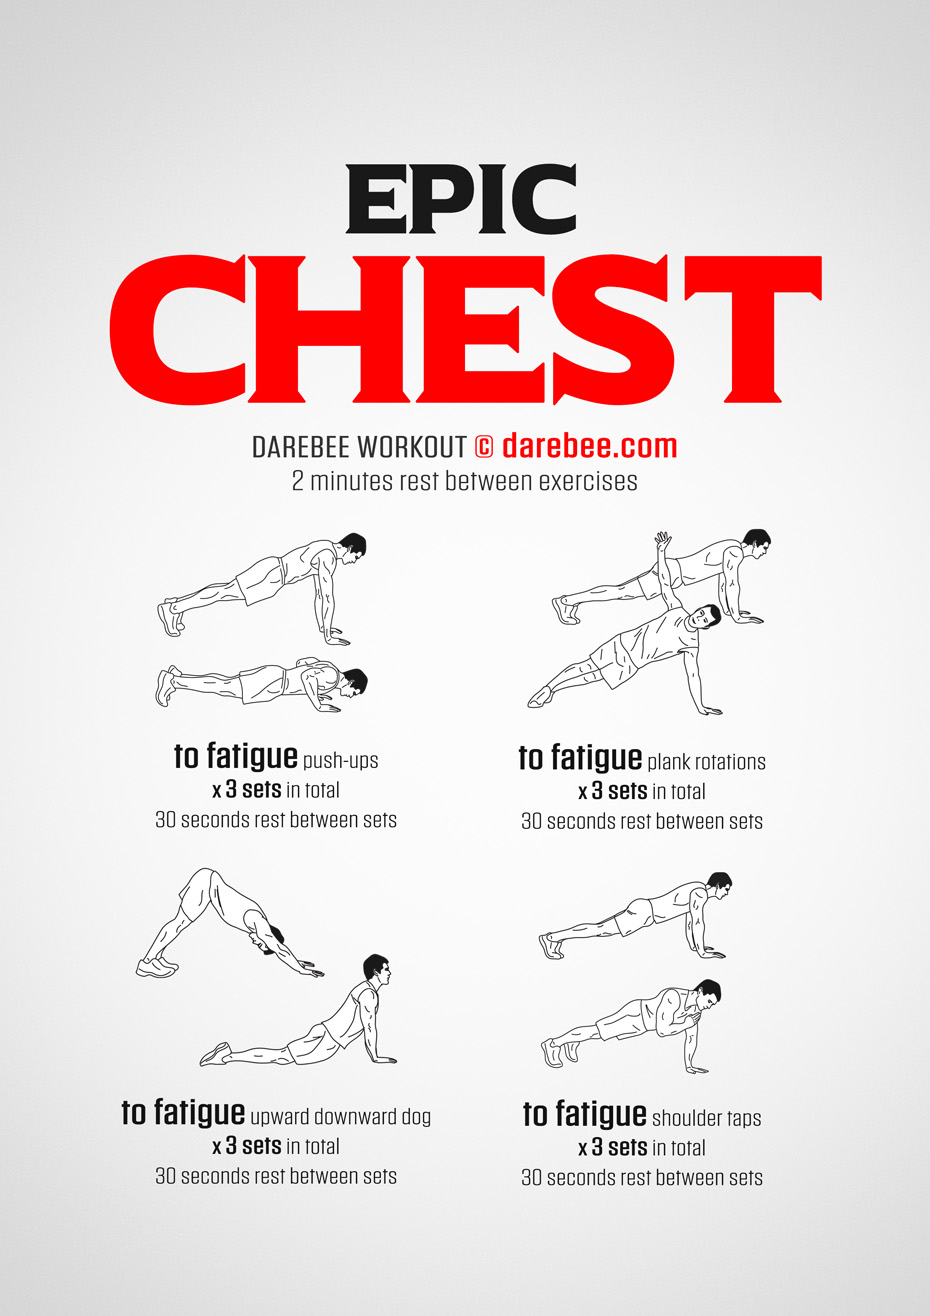 Epic Chest Workout